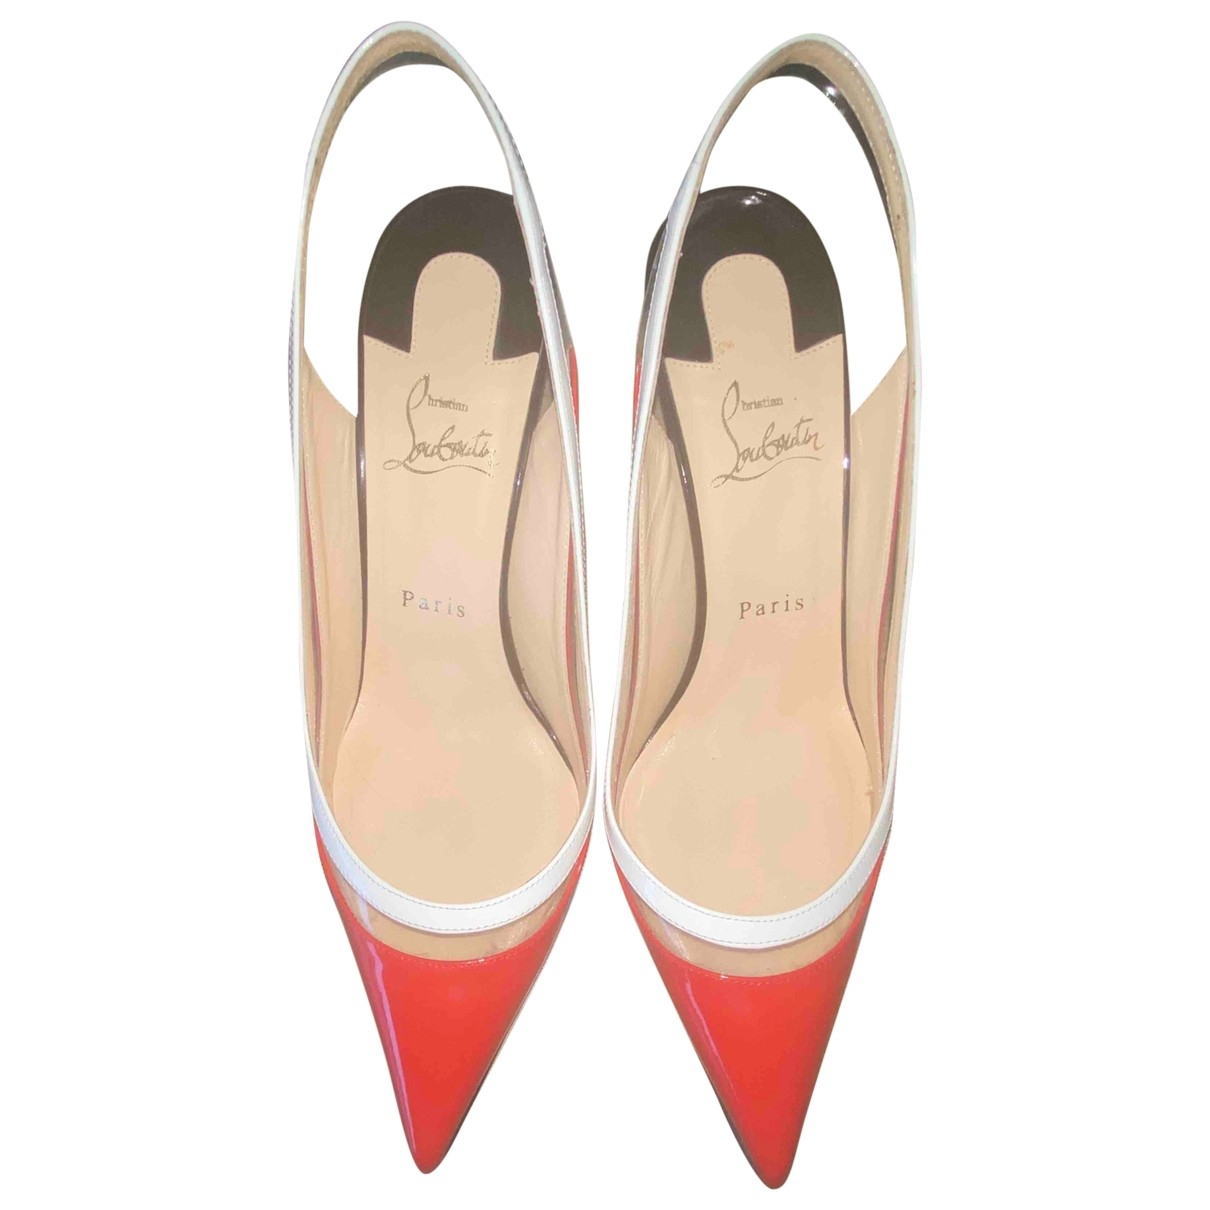 Christian Louboutin \N Multicolour Patent leather Heels for Women 39 EU